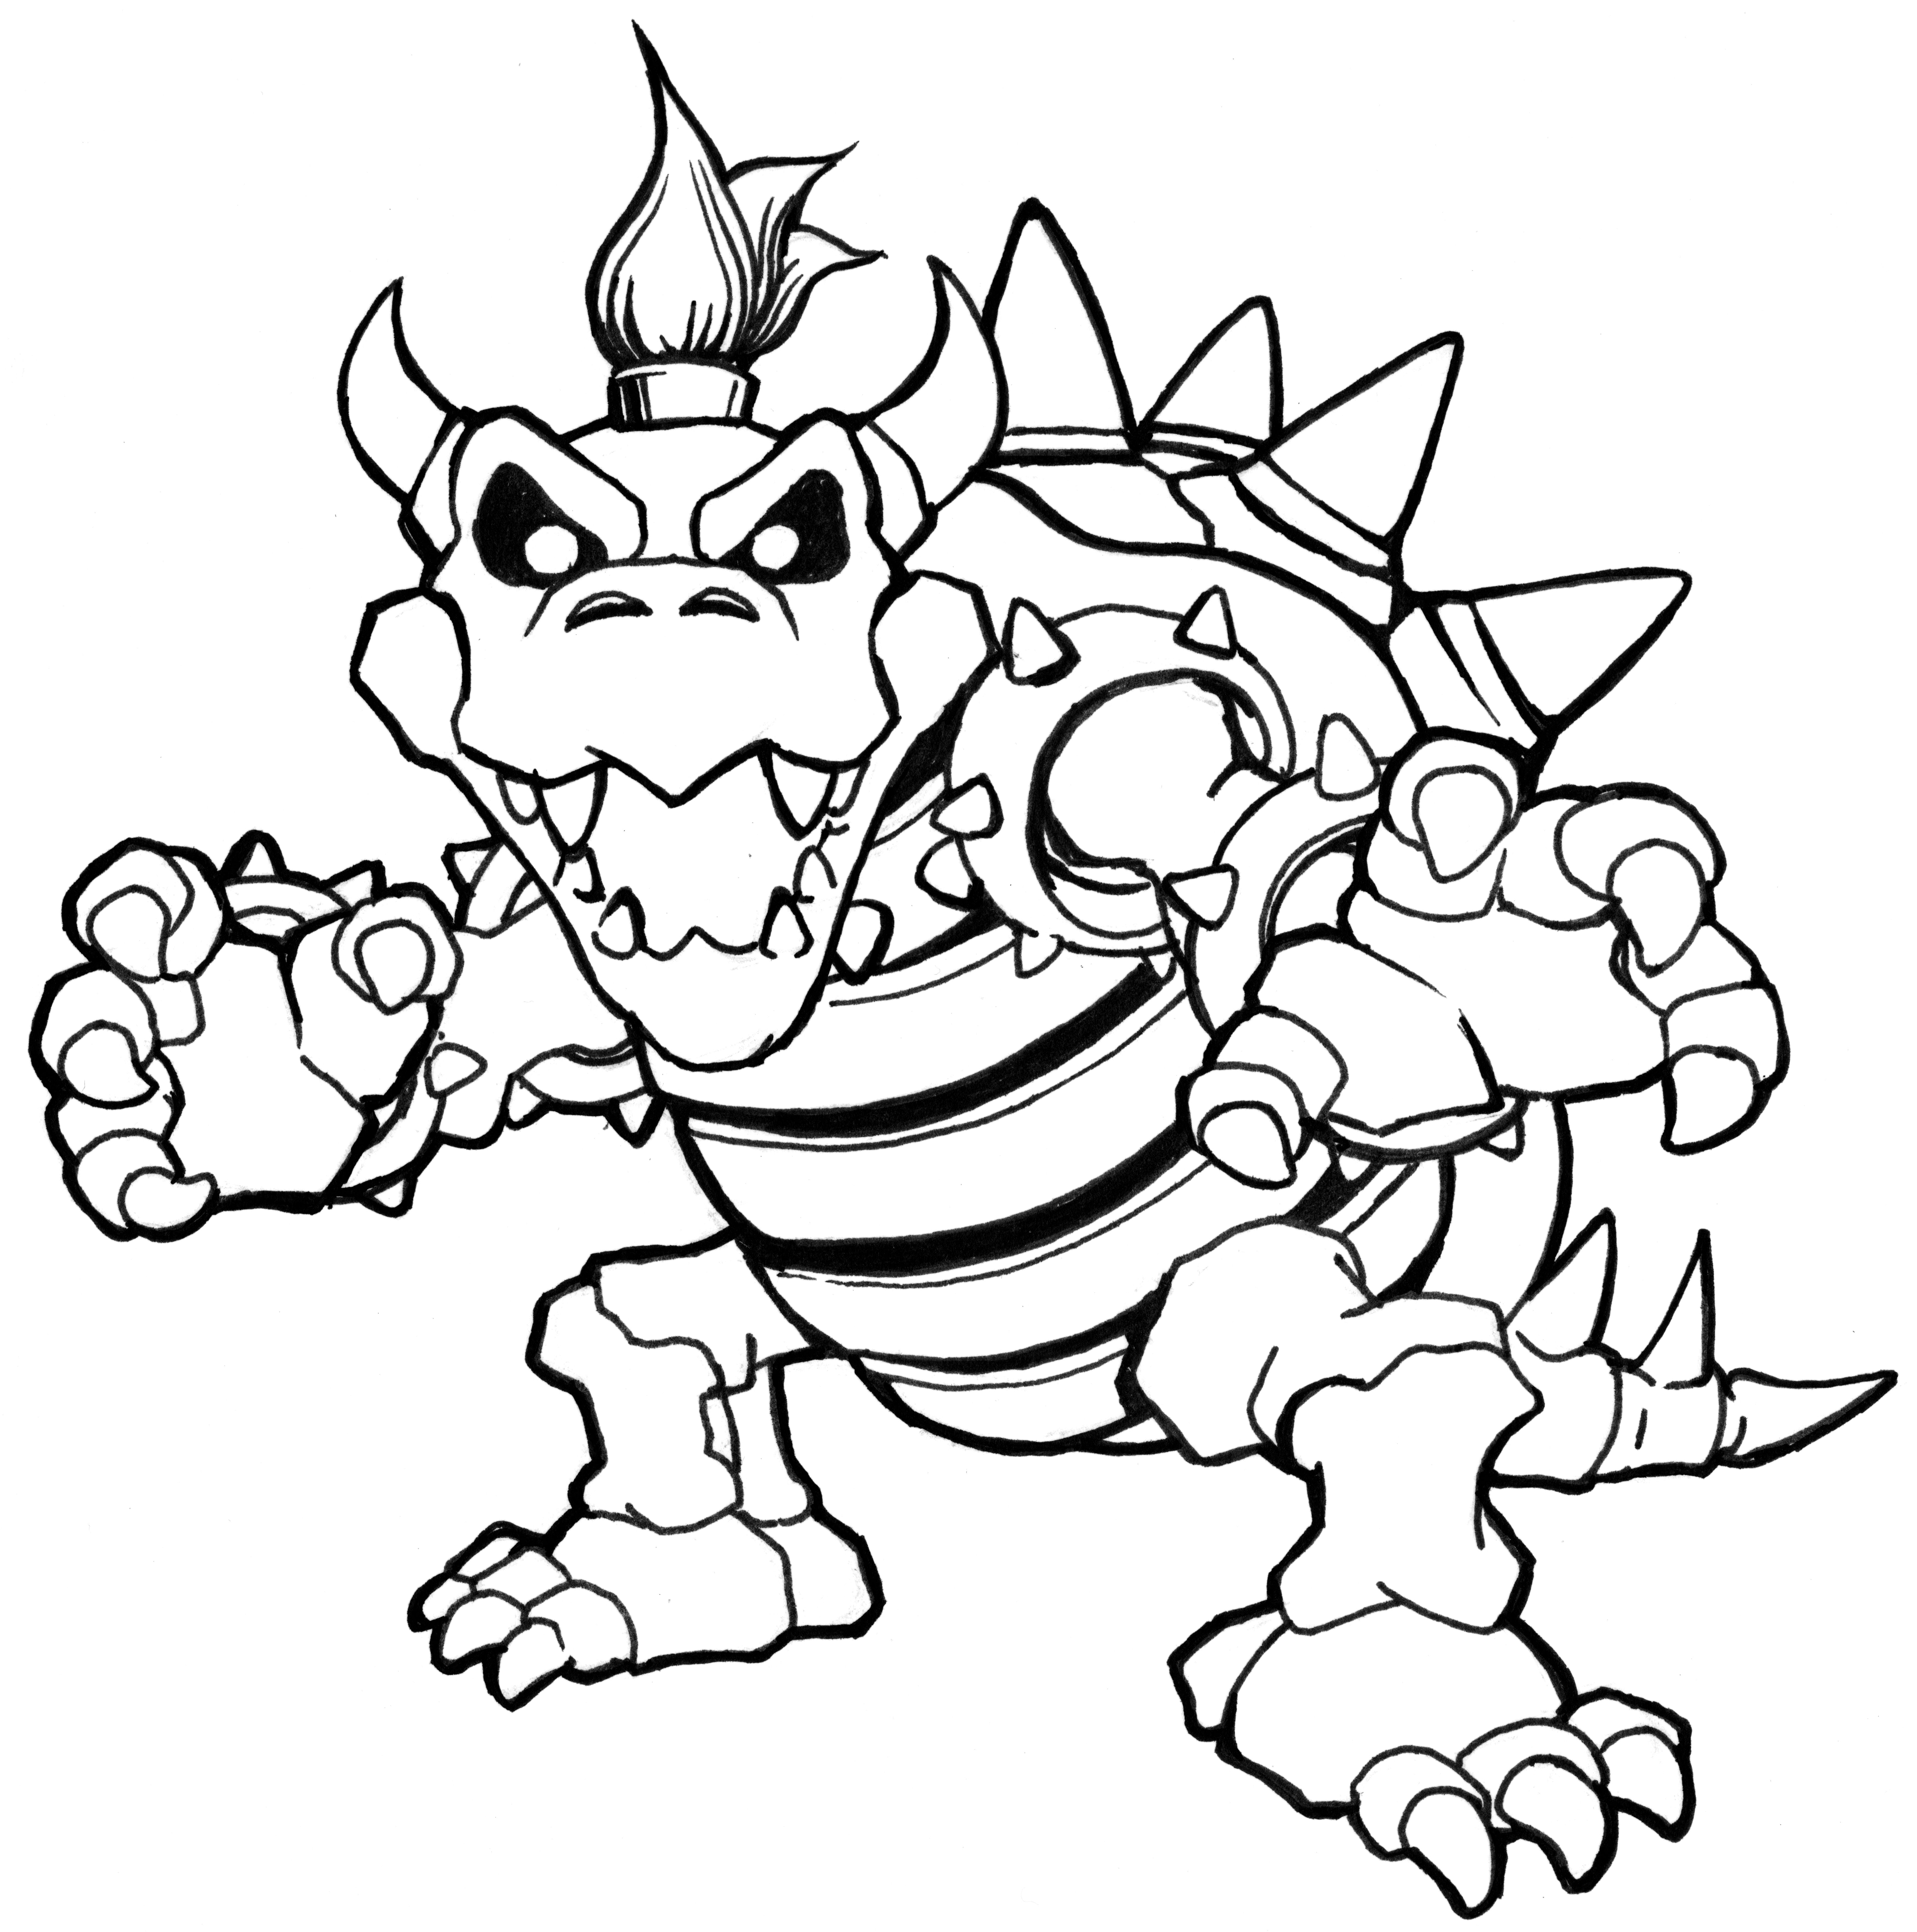 7000x7053 Bowser Coloring Bowser Coloring Pages Dry Bowser Mario Coloring